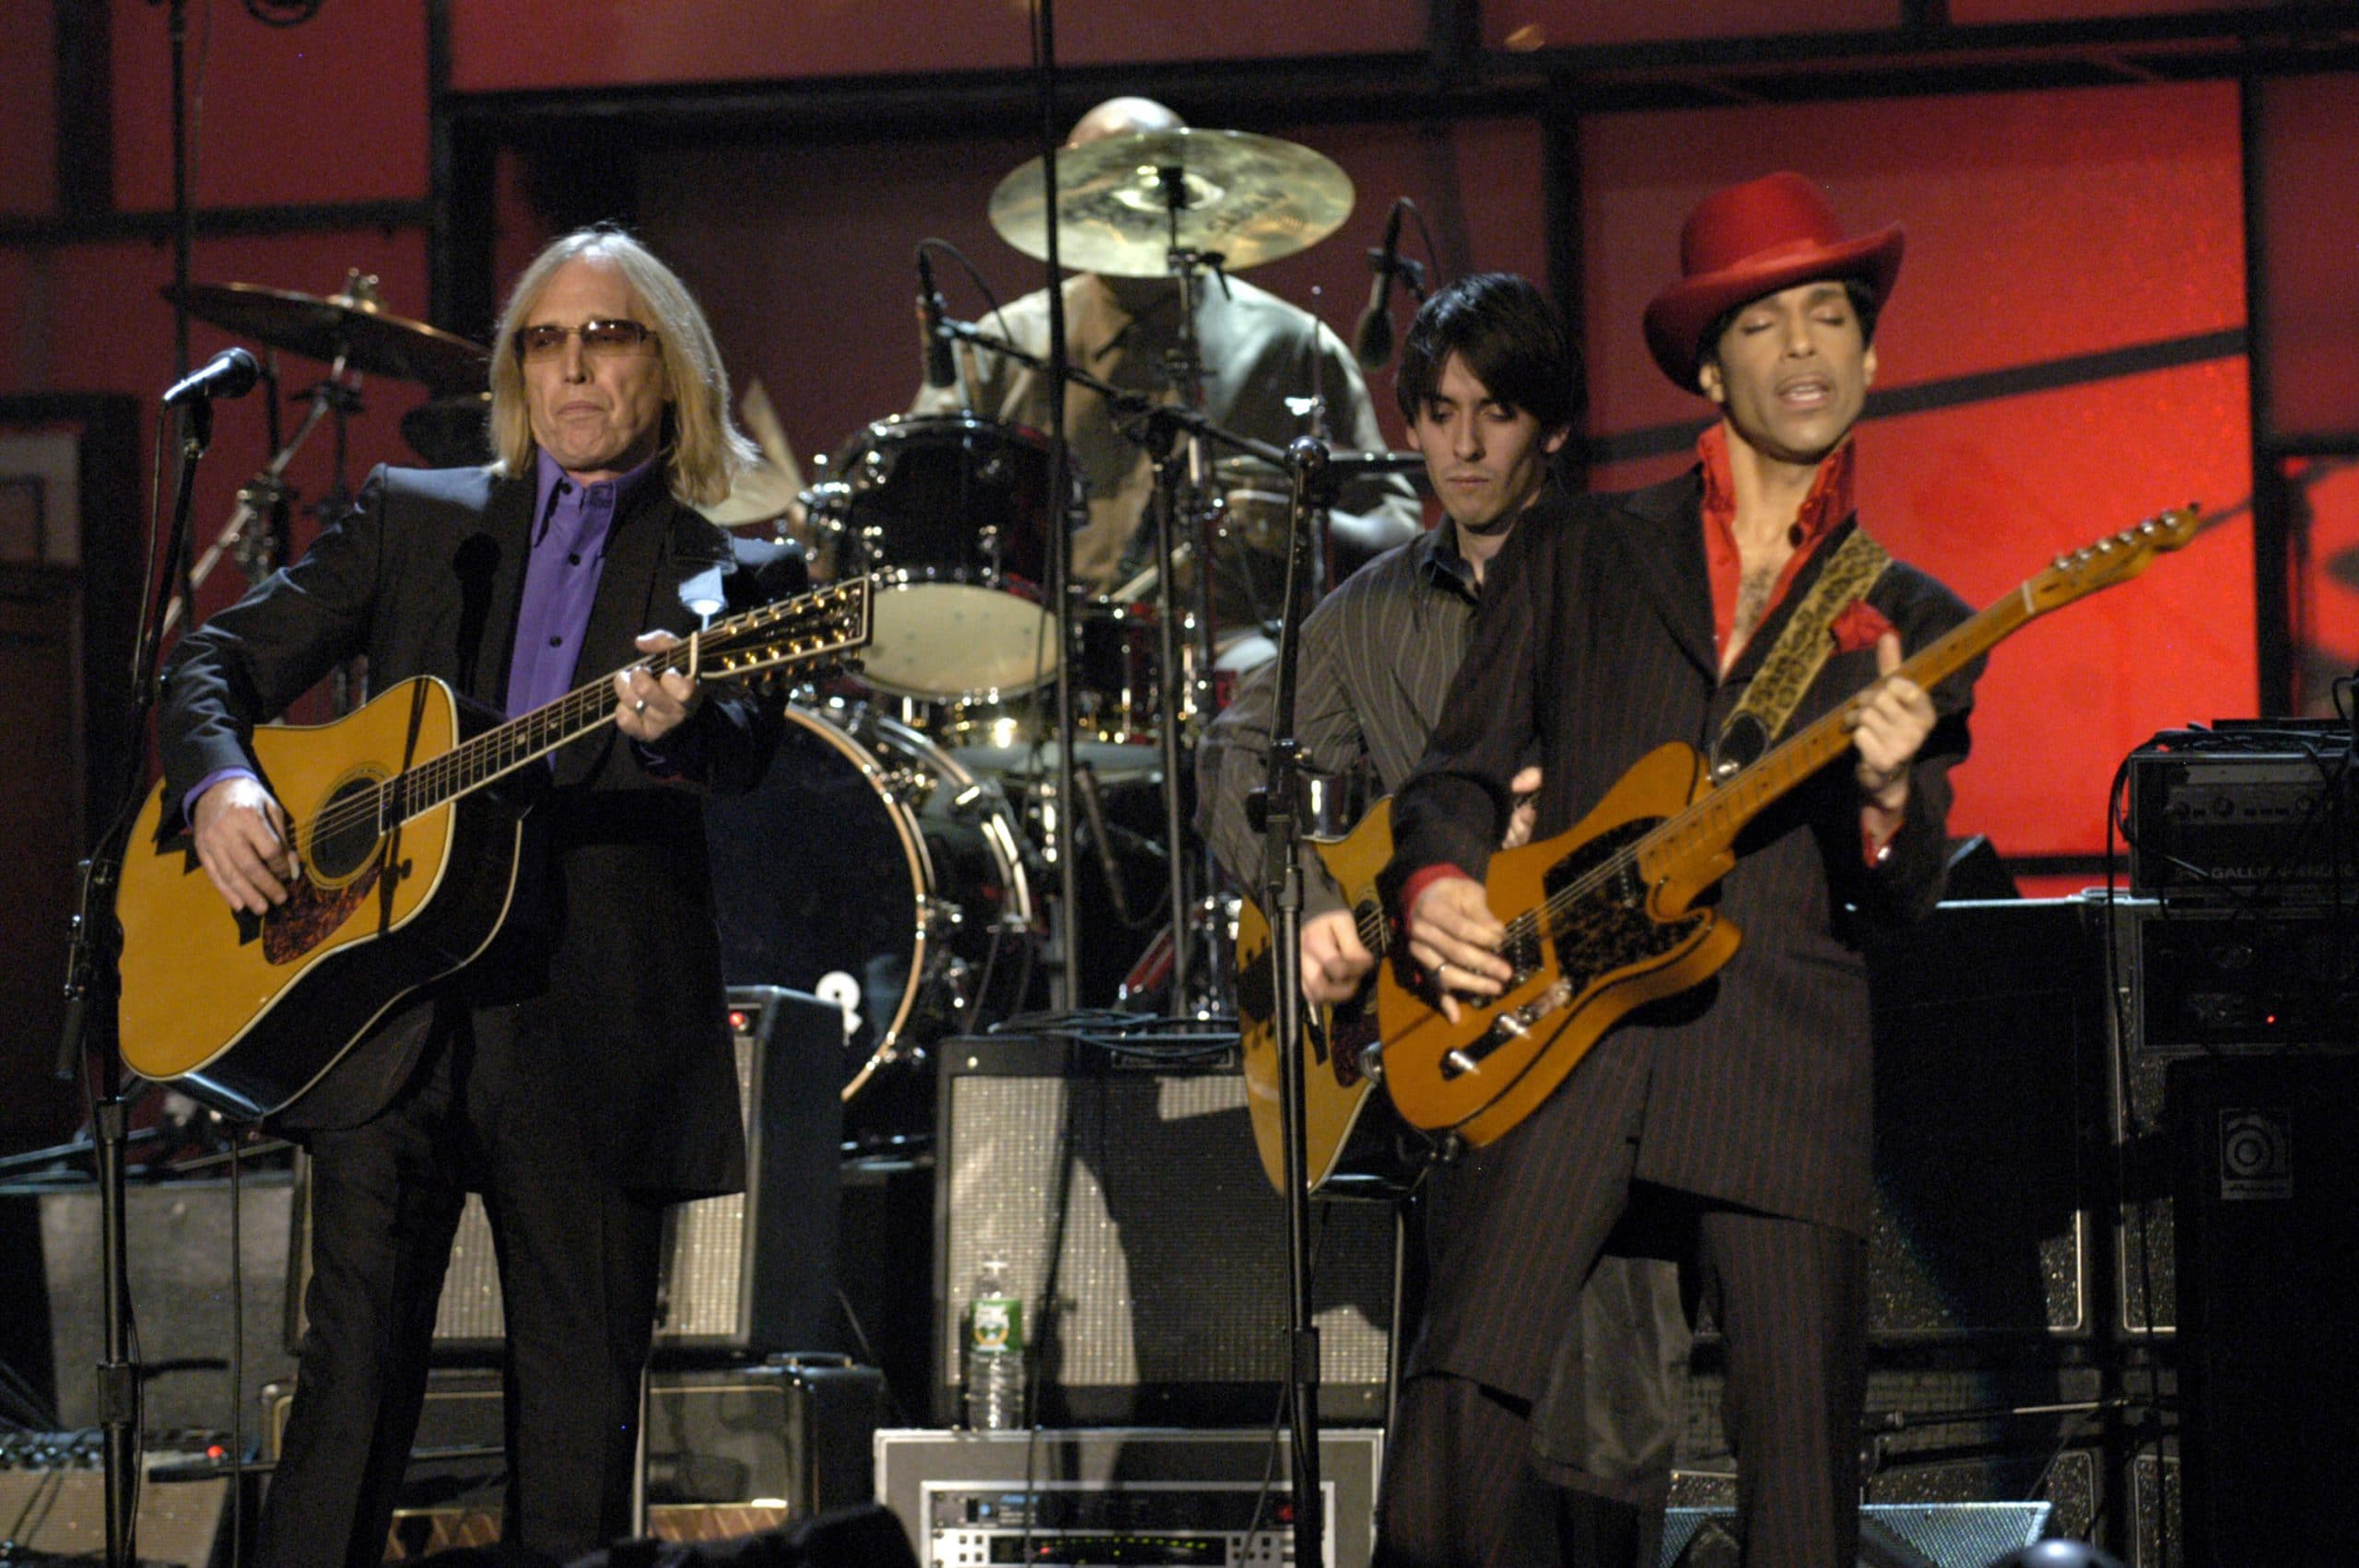 tom petty and prince perform together